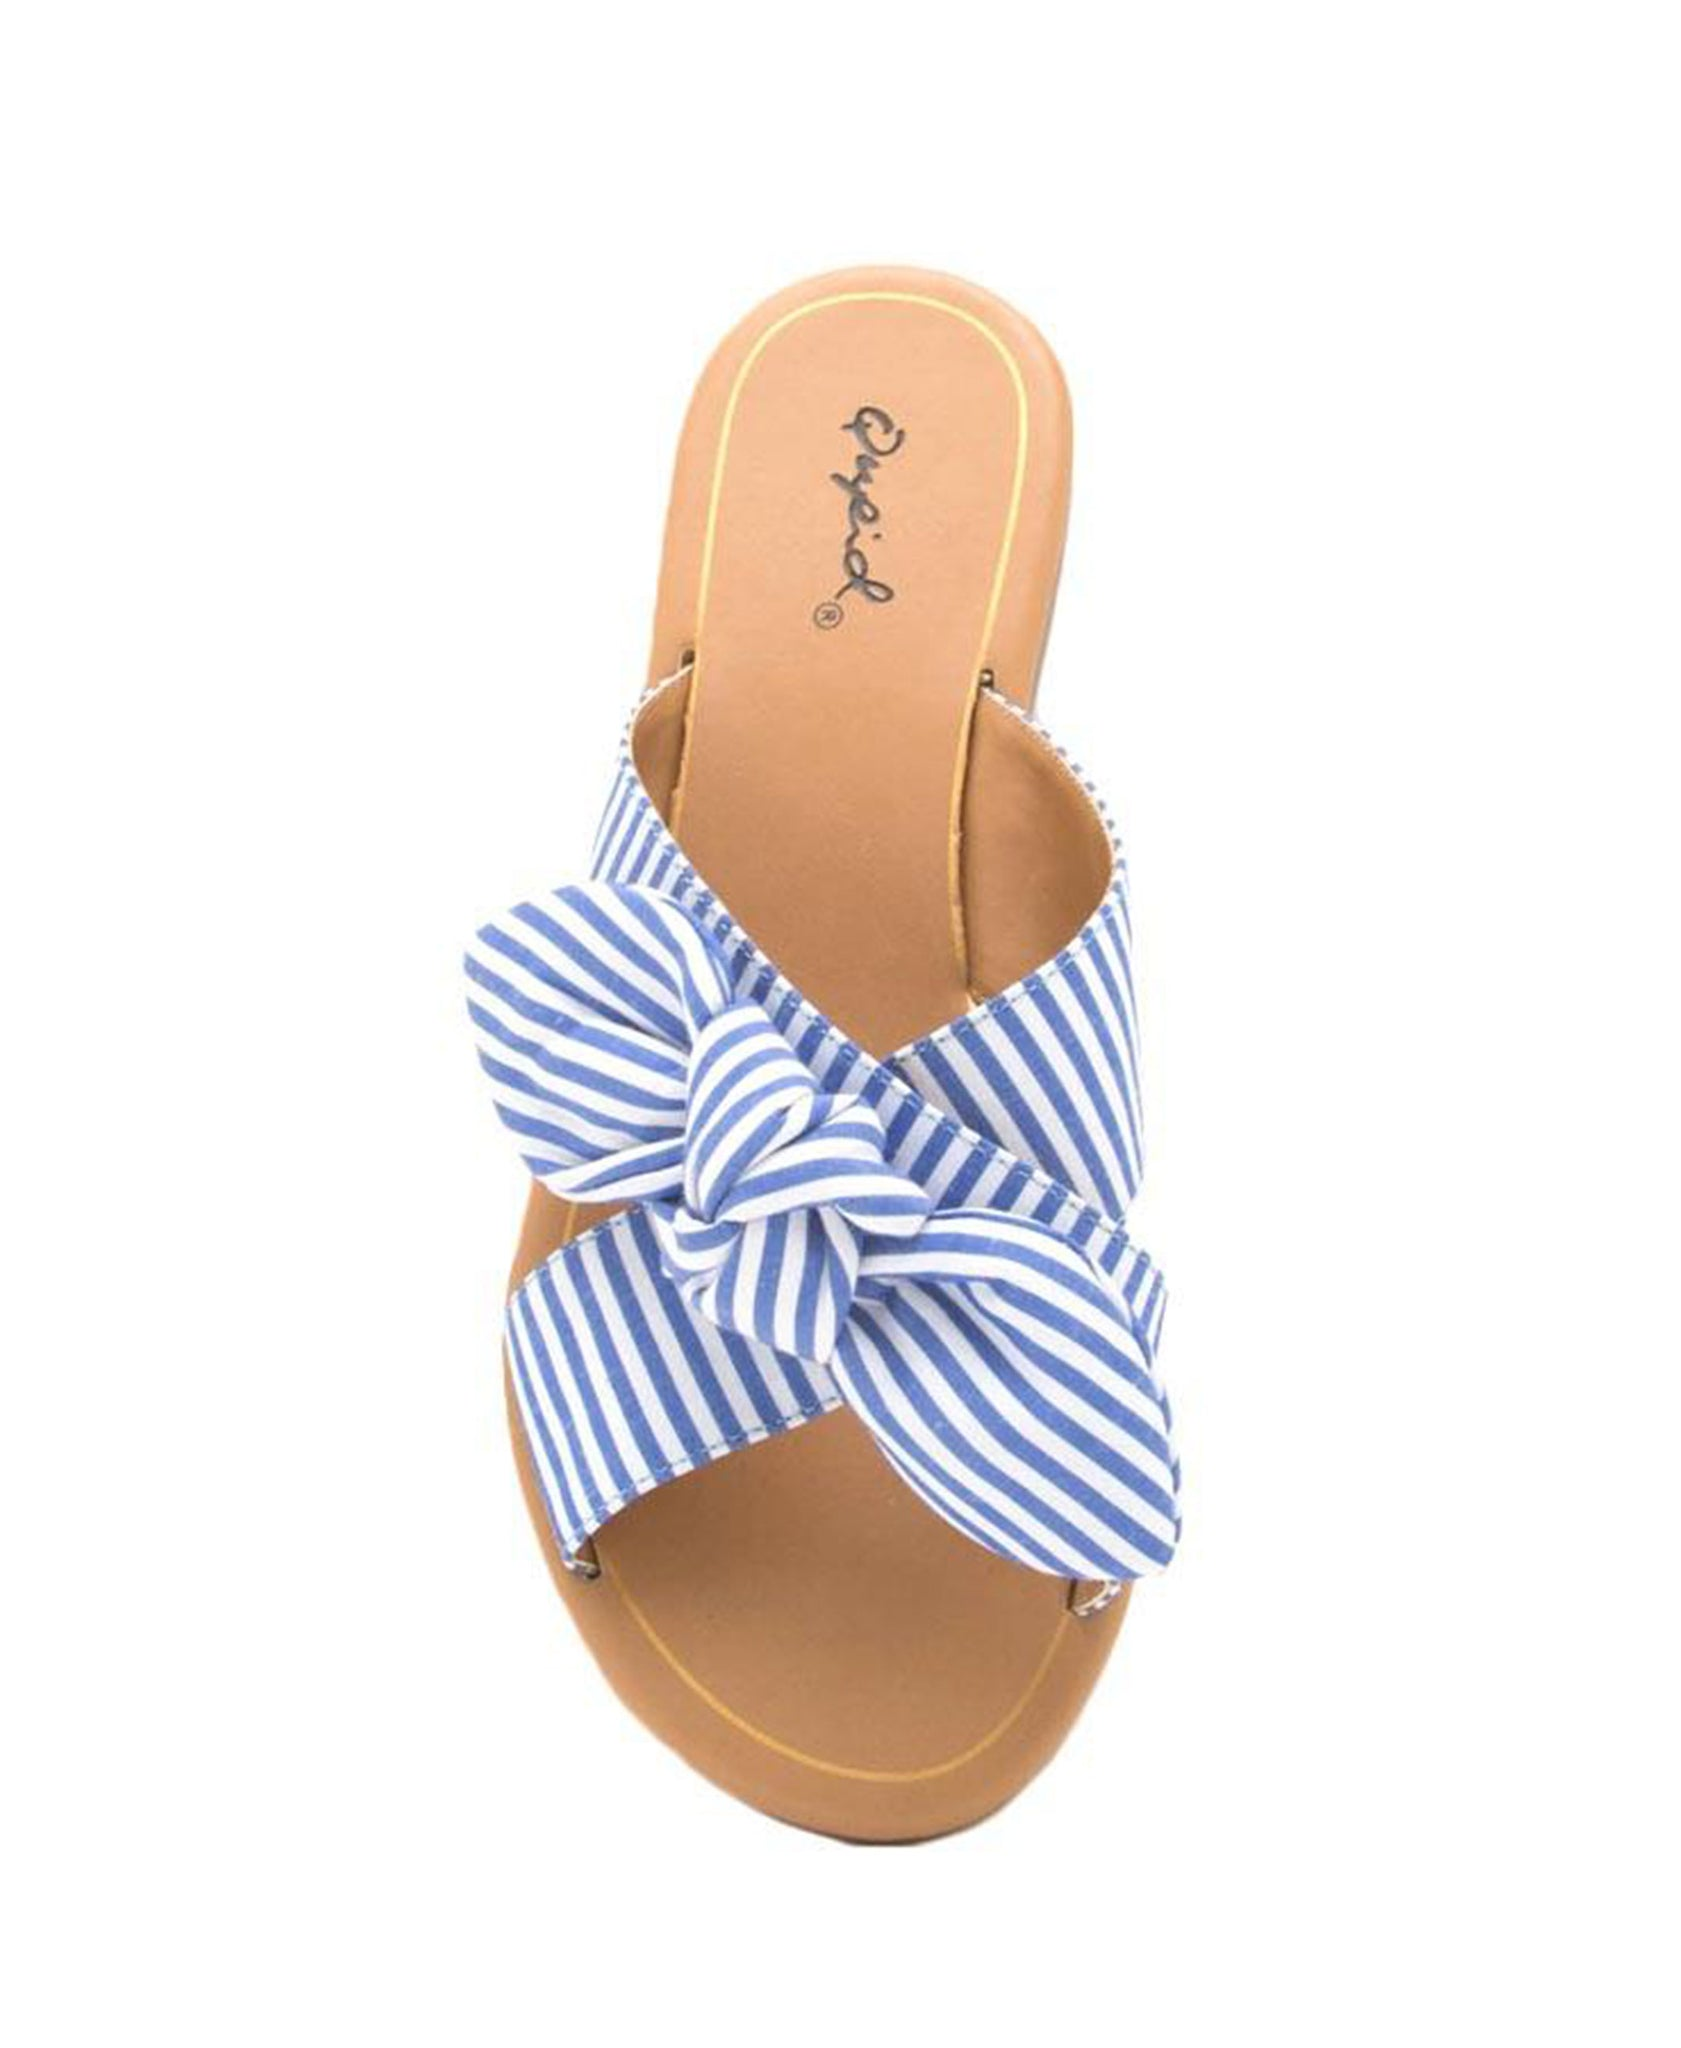 Autumn Bow Slide - Blue